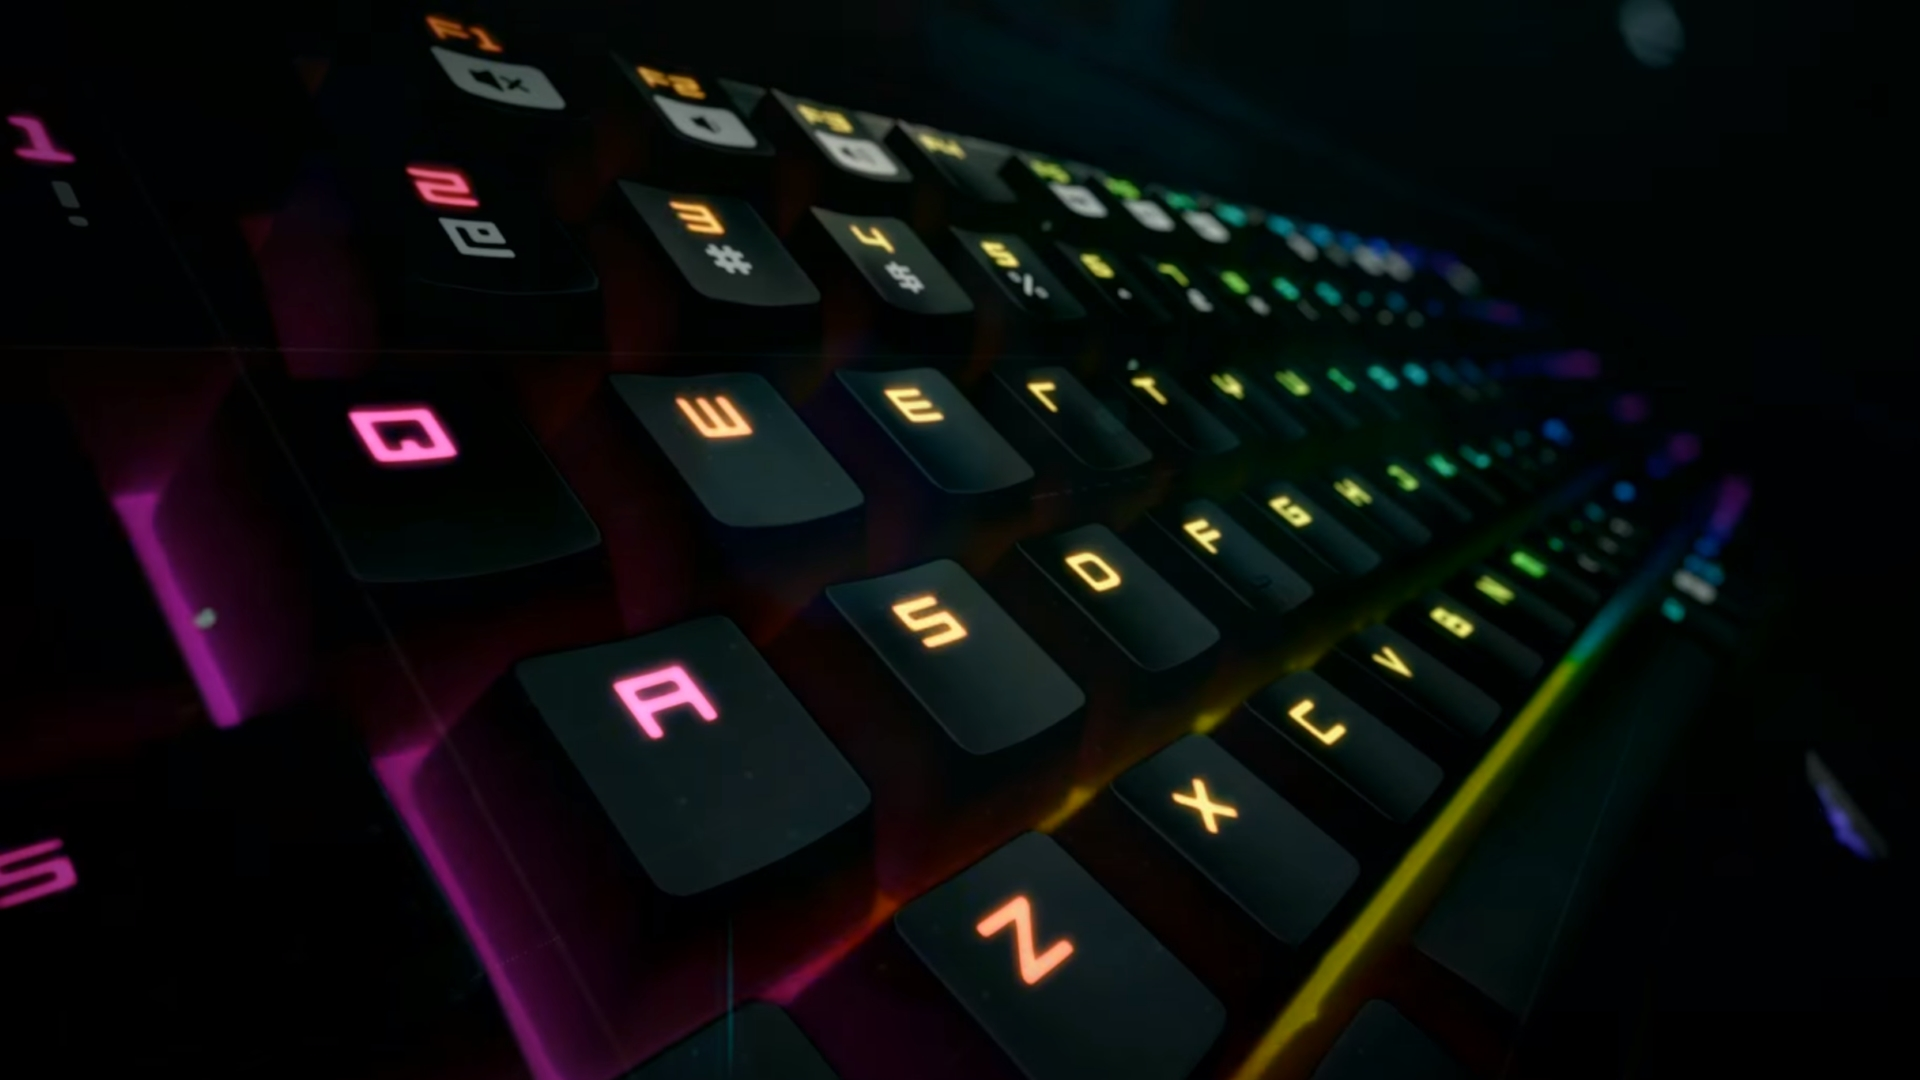 Best Wallpapers For Keyboard